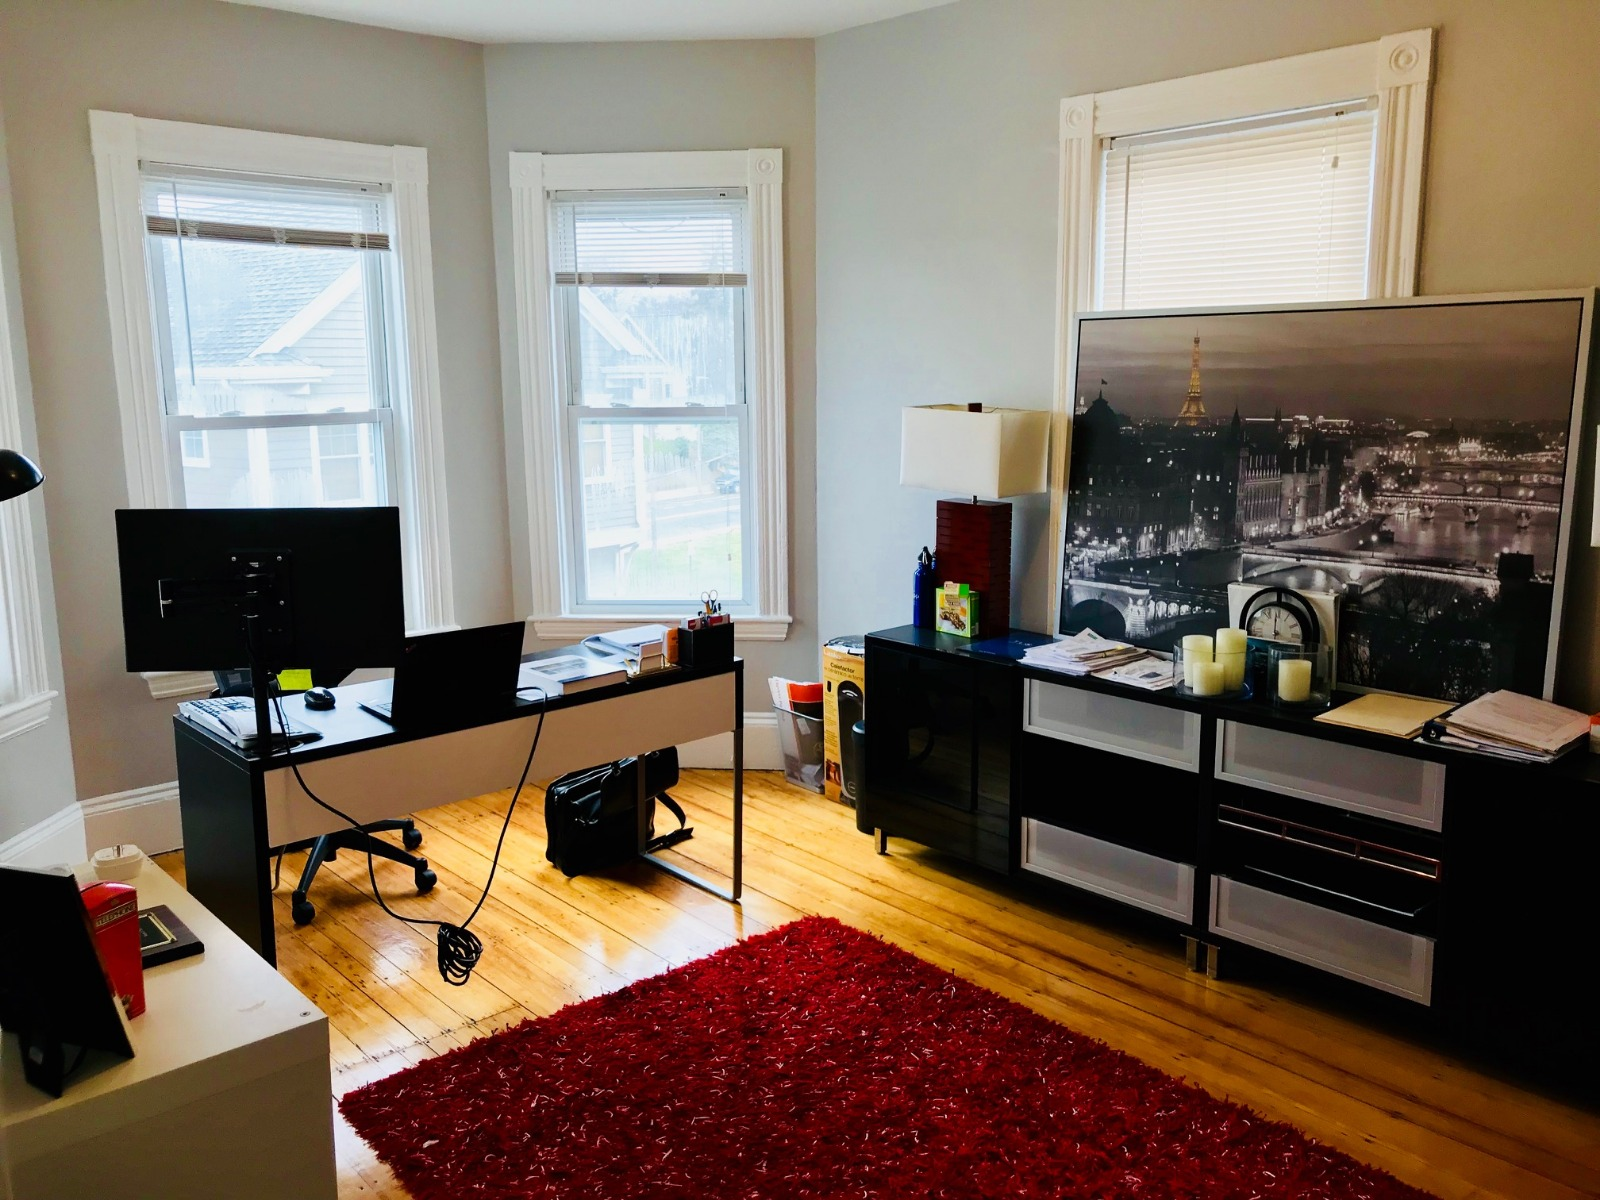 Boston Student Apartments Real Estate Websites Boston Homes For Rent